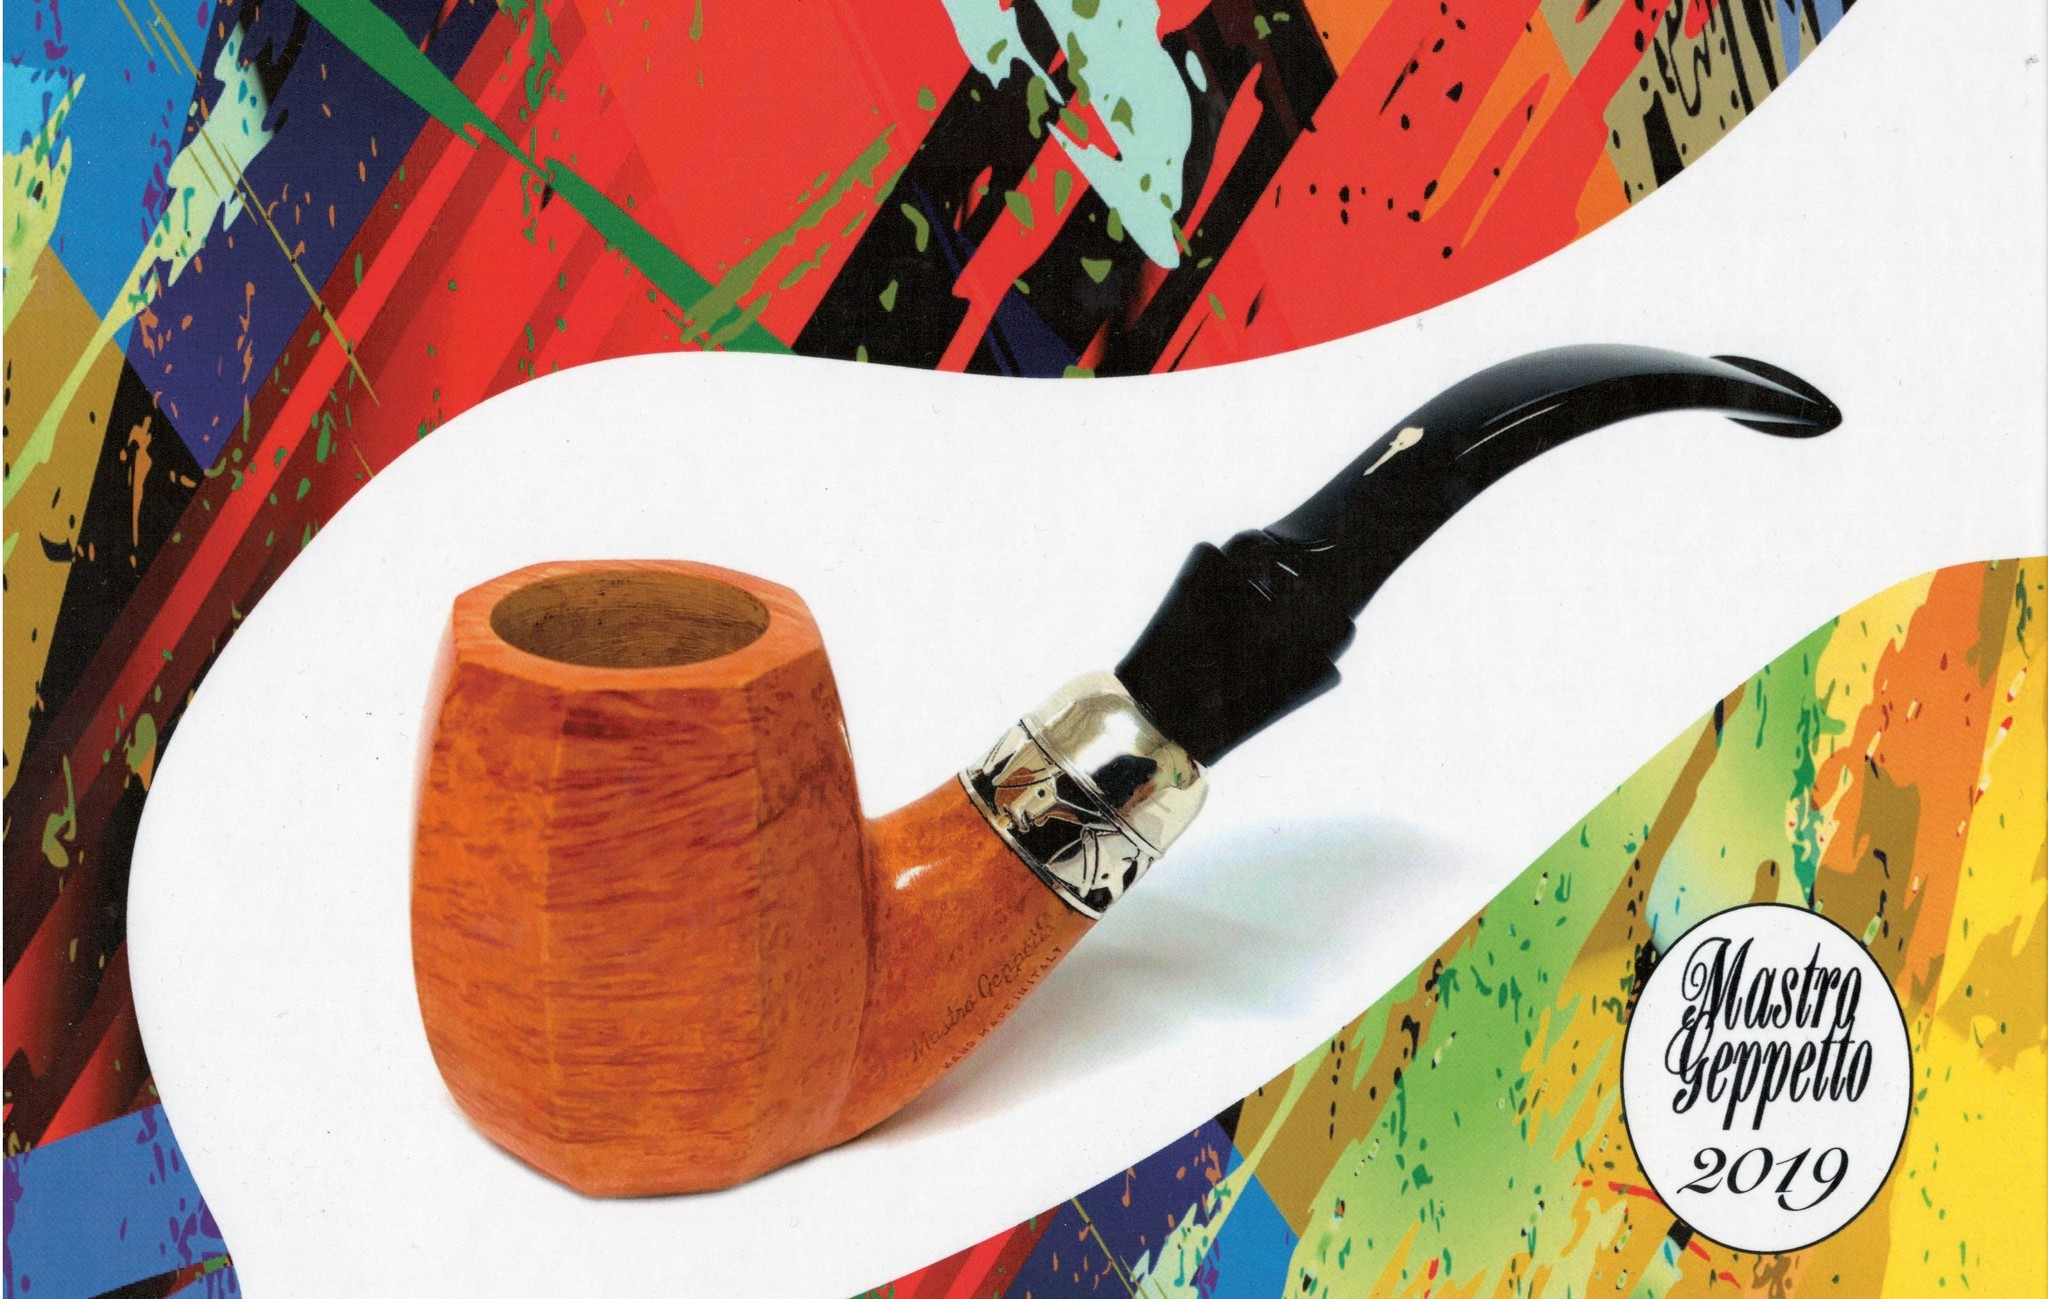 Smoking Pipe Mastro Geppetto Pipe of the Year 2019